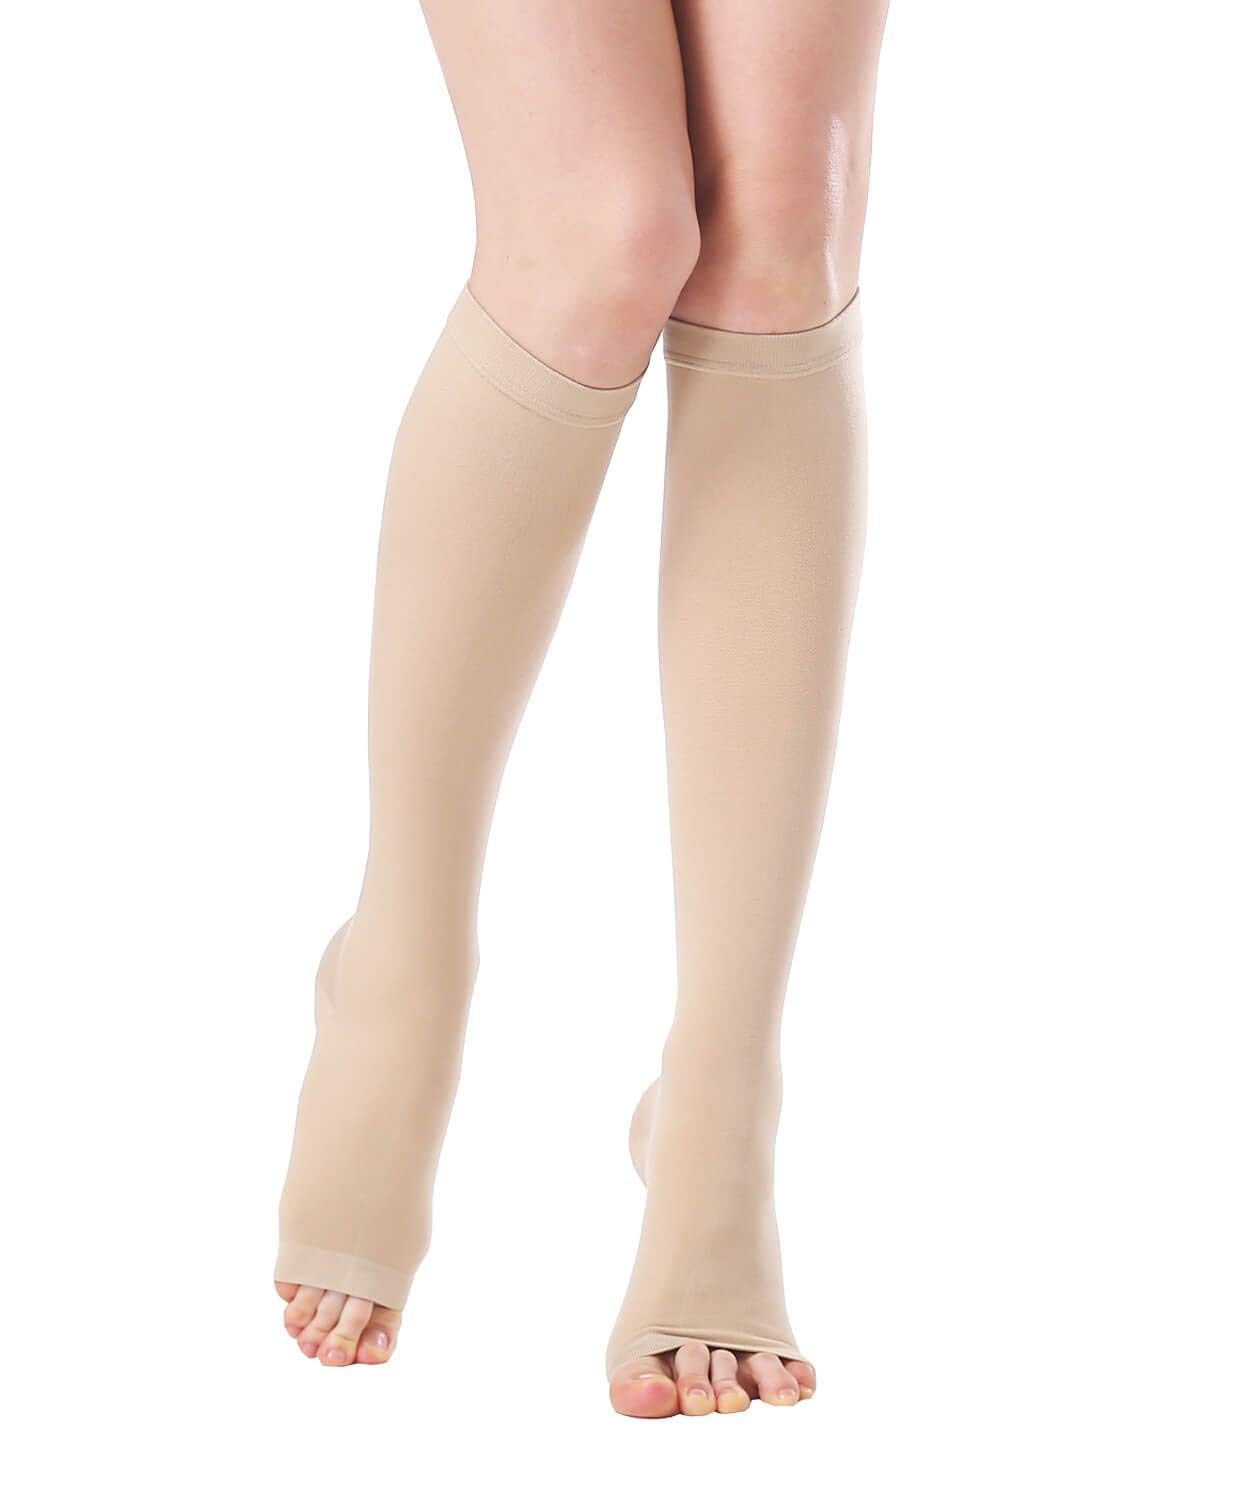 d600cd6ec36 Get Quotations · SWOLF Open Toe Knee High Compression Socks Women Men